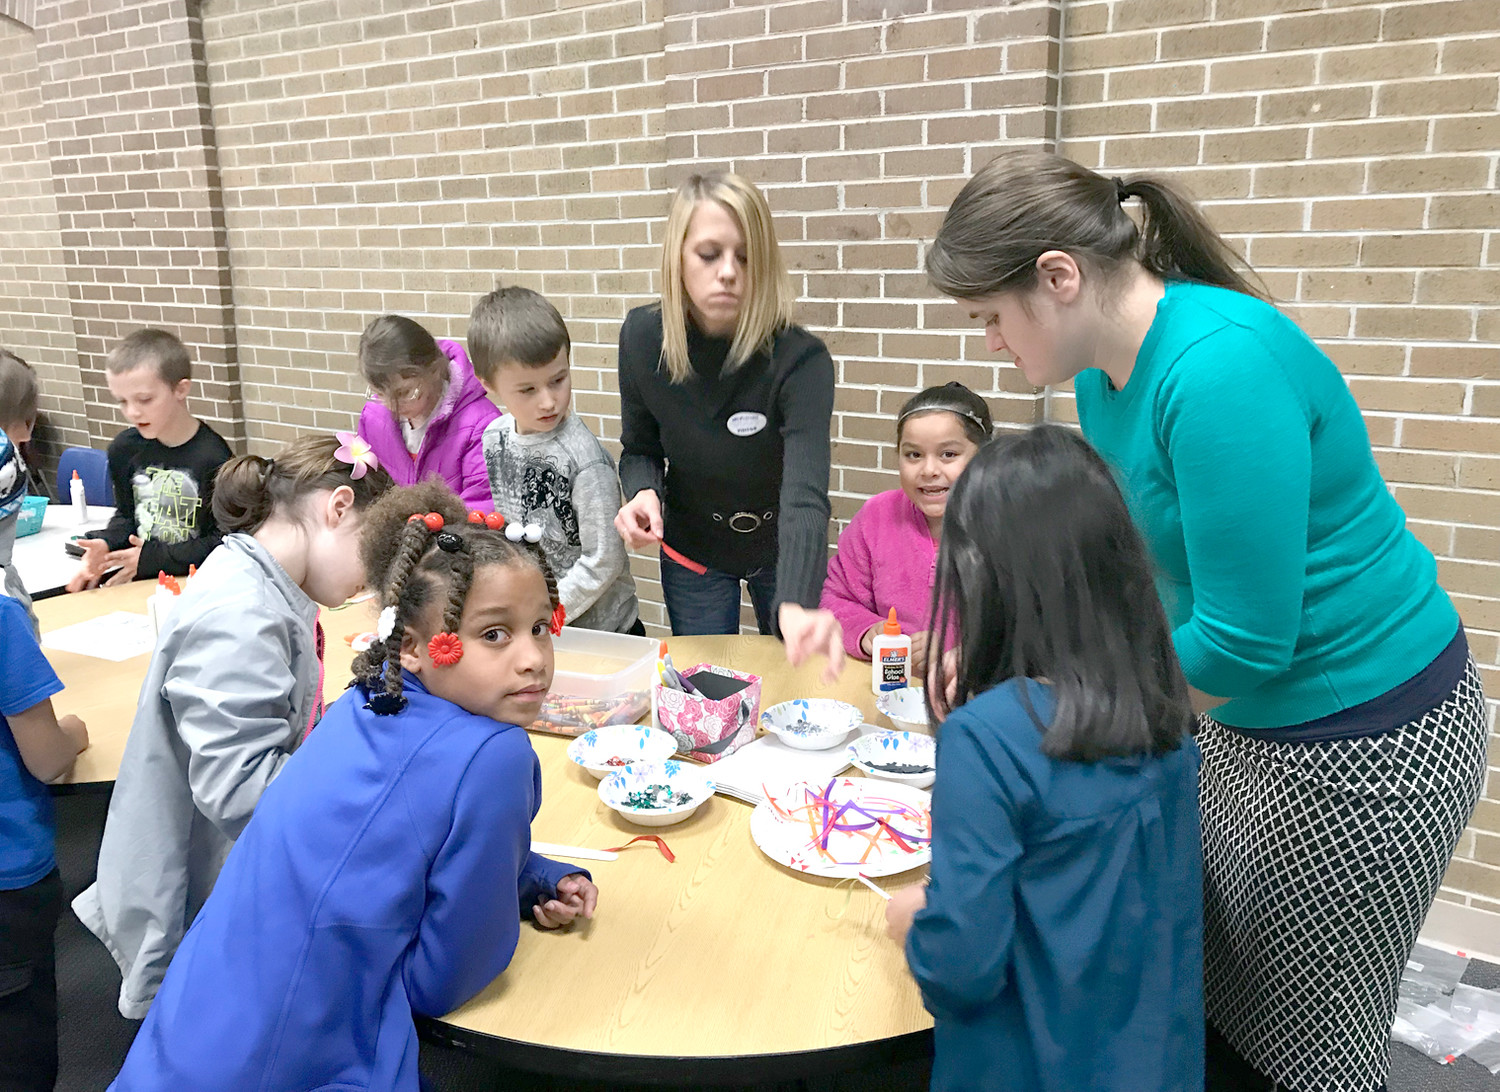 CREATIVE students at Blythe-Bower Elementary School make their own holiday ornaments during a recent event.